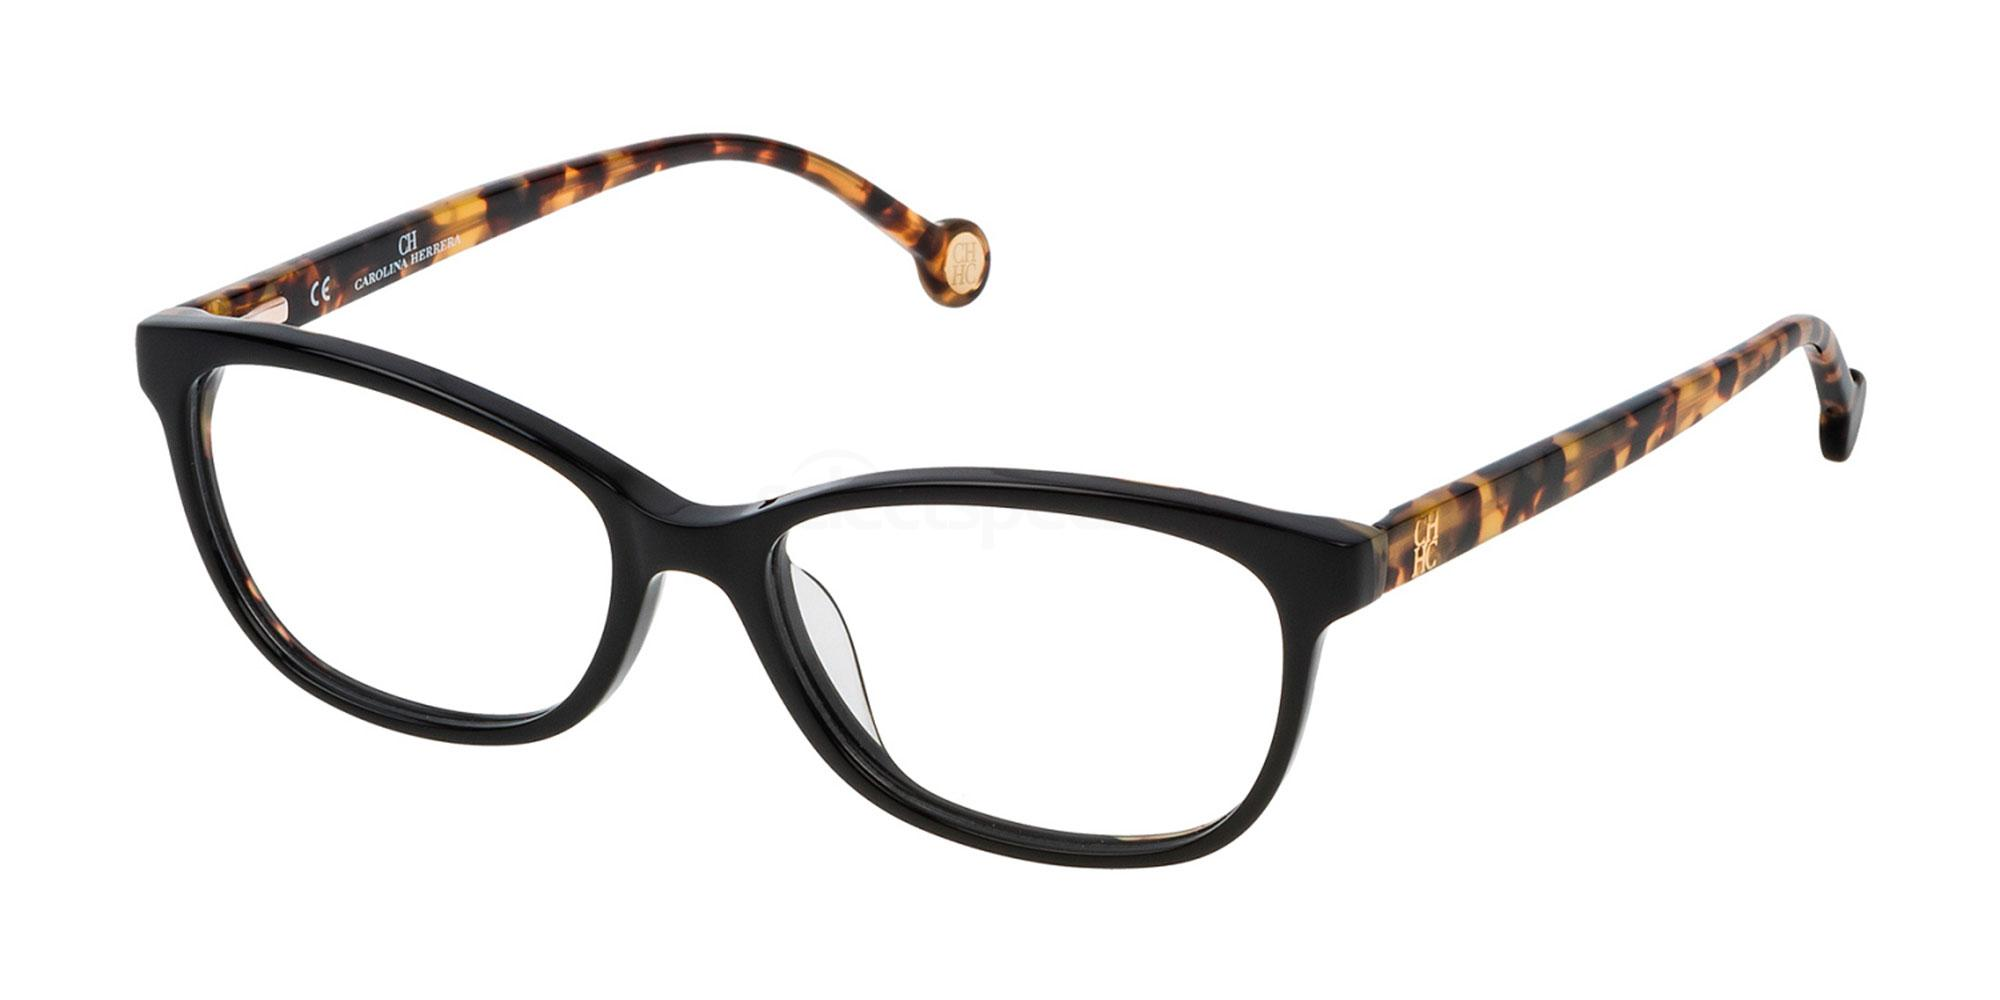 0700 VHE716 Glasses, CH Carolina Herrera